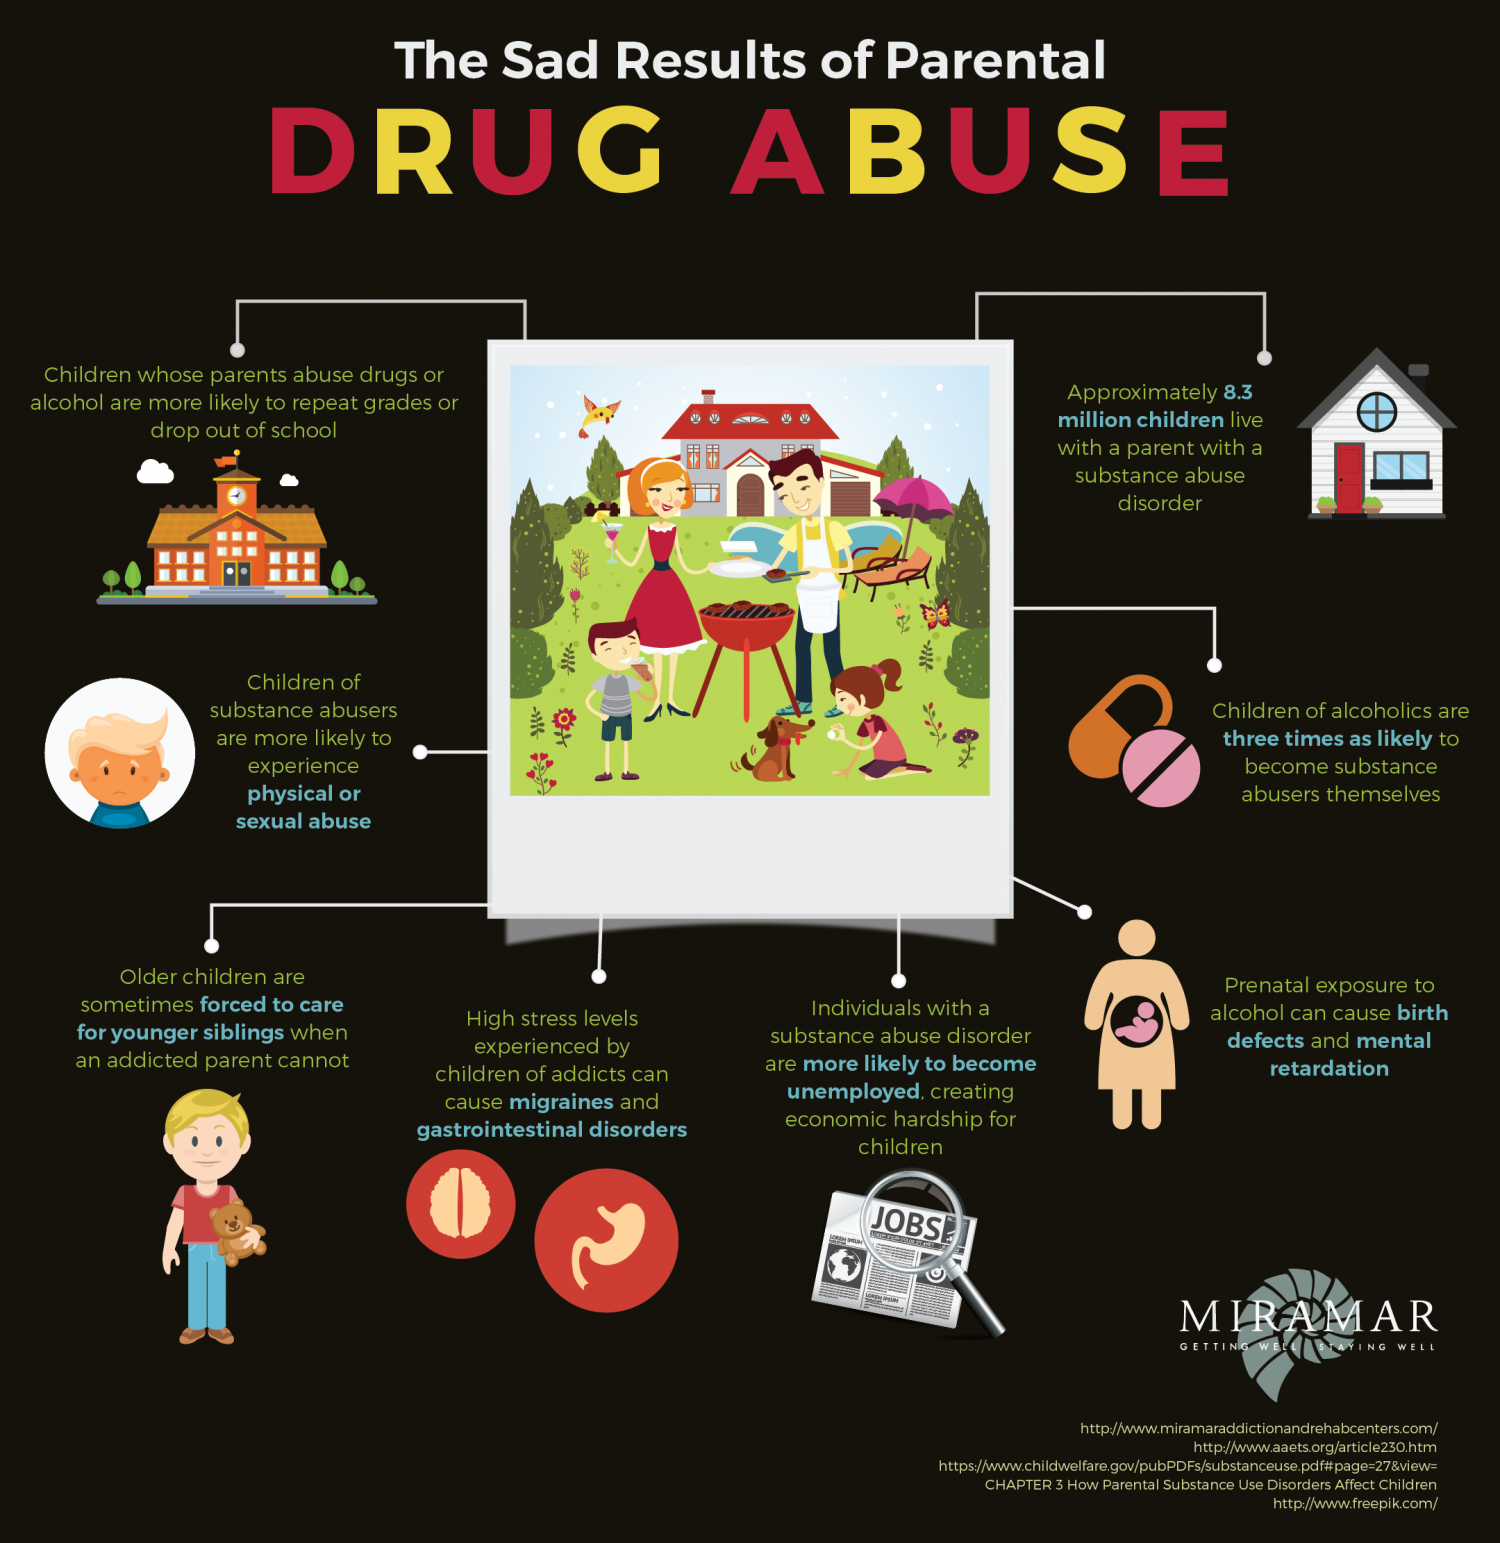 The Sad Results of Parental Drug Abuse Infographic